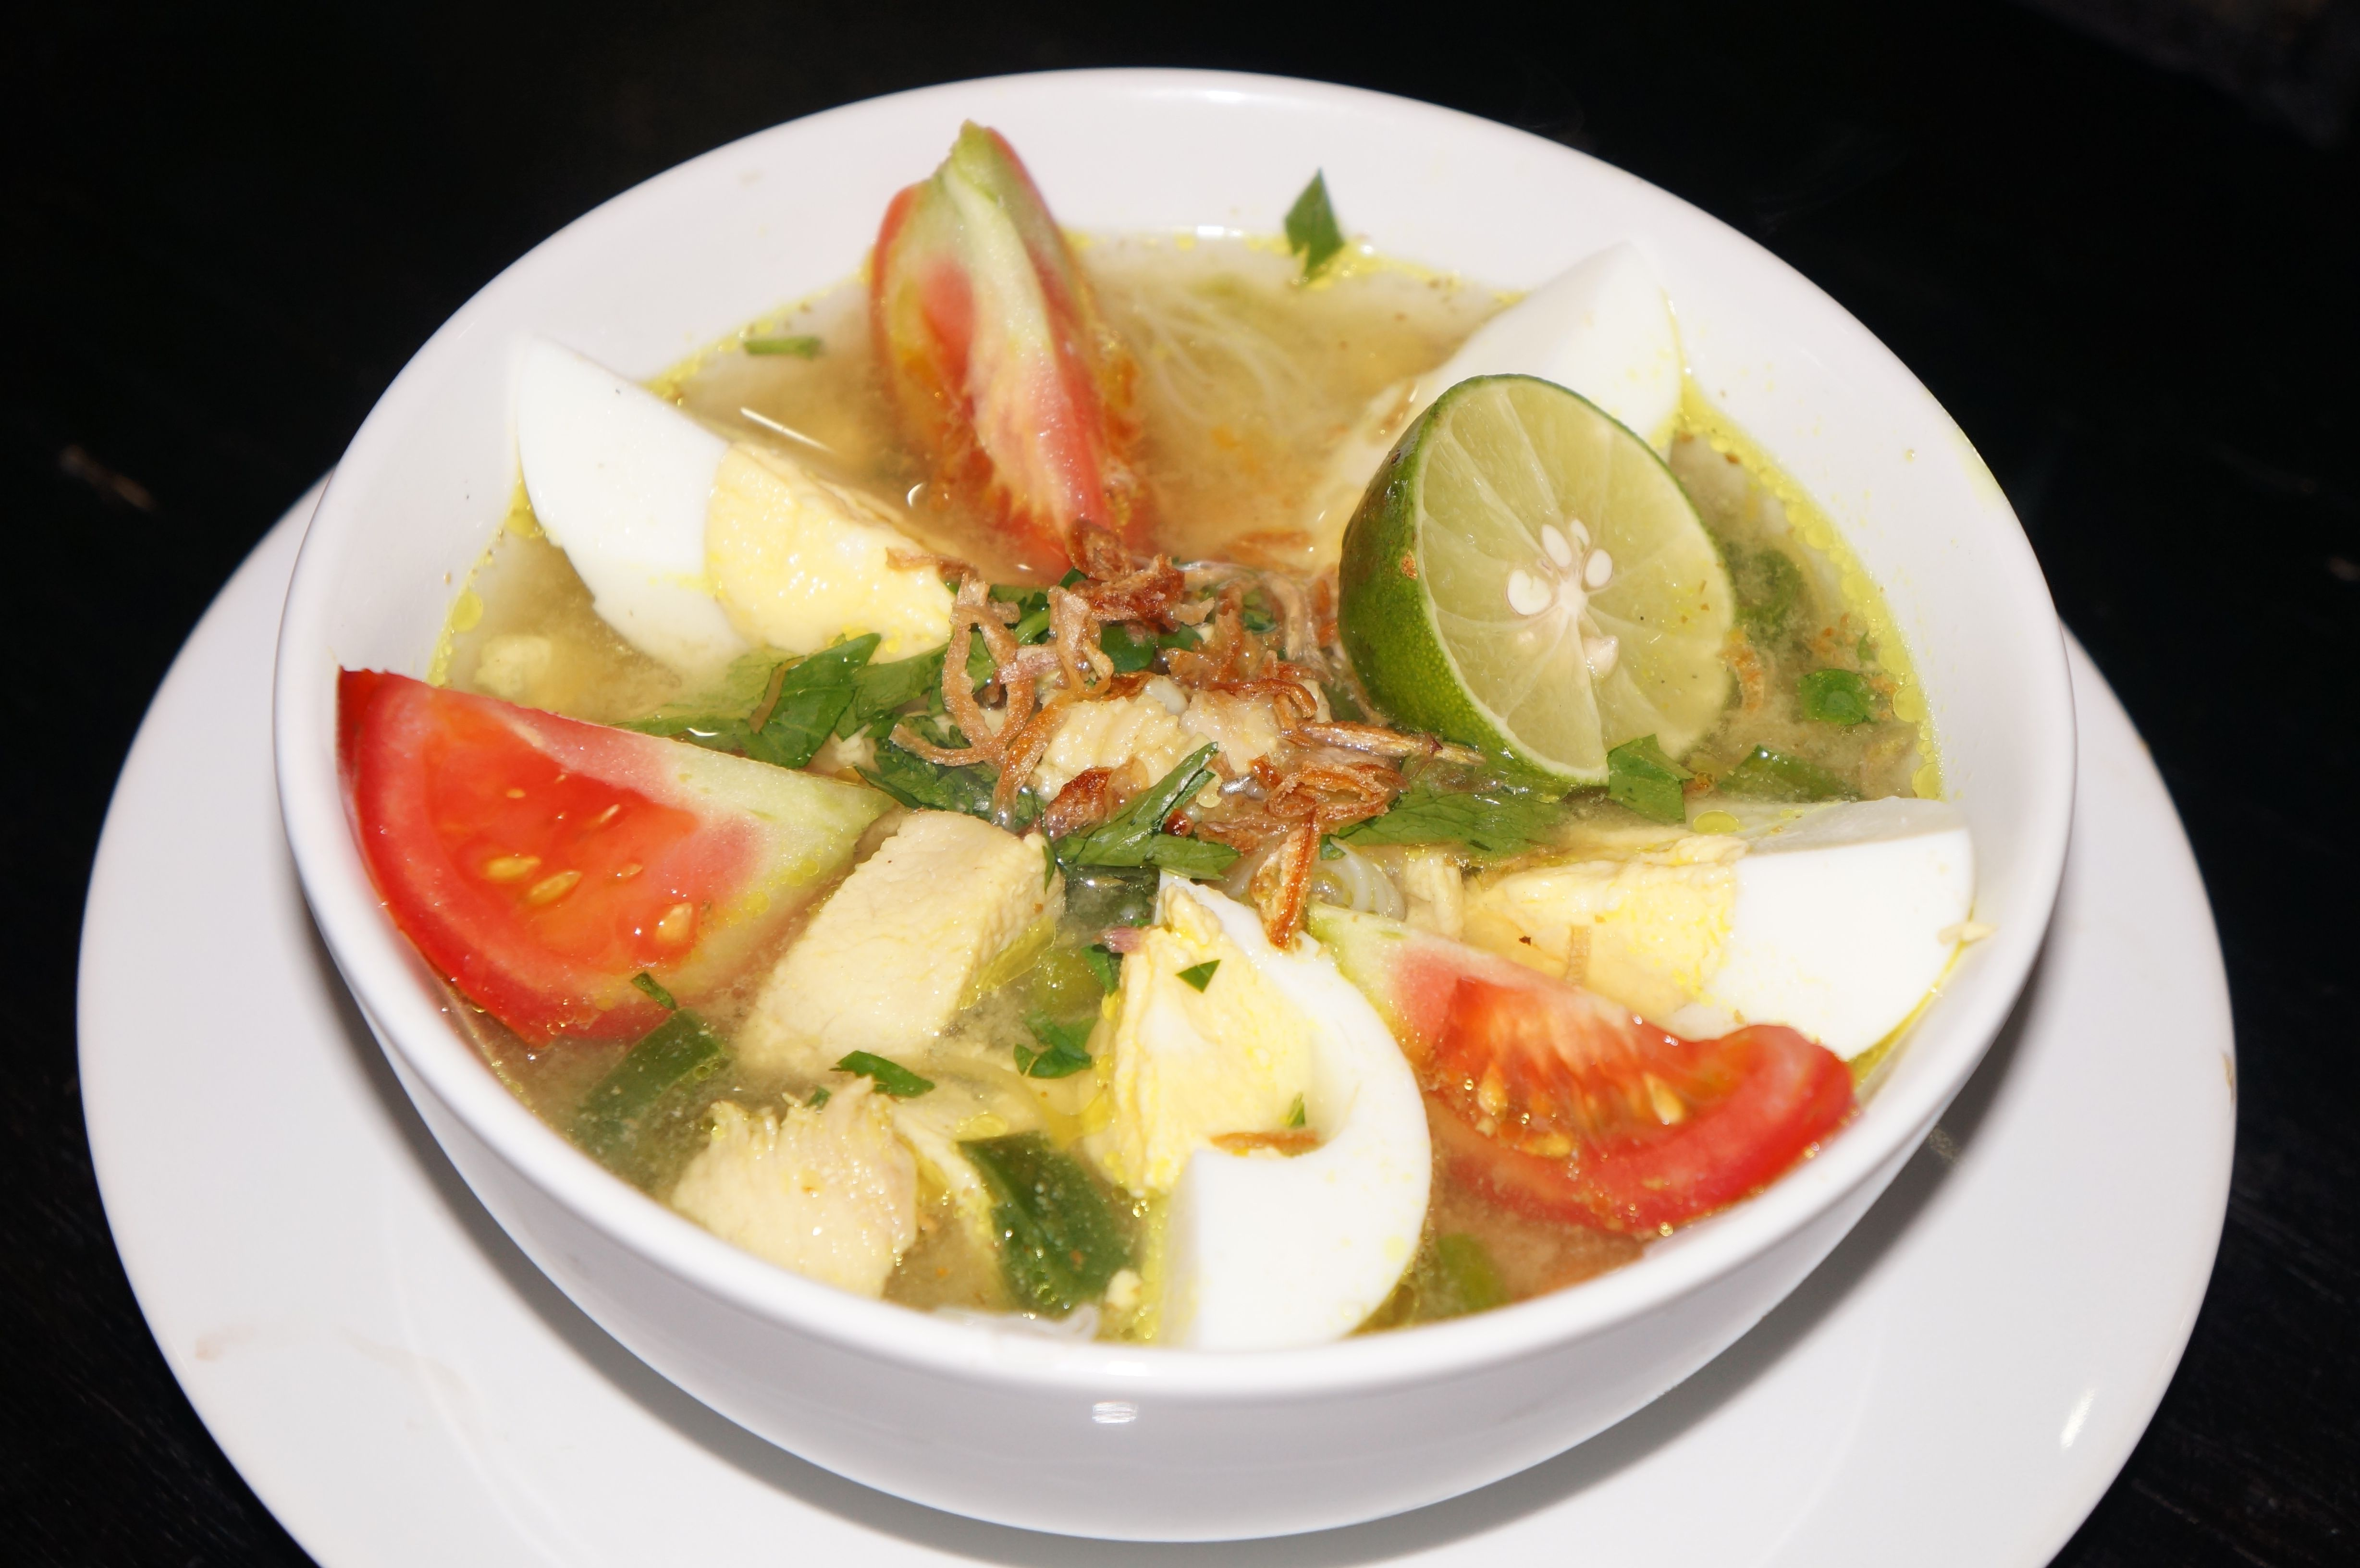 Soto Ayam (chicken soup) Recipe available on Facebook: https://www.facebook.com/blisssanctuaryforwomen